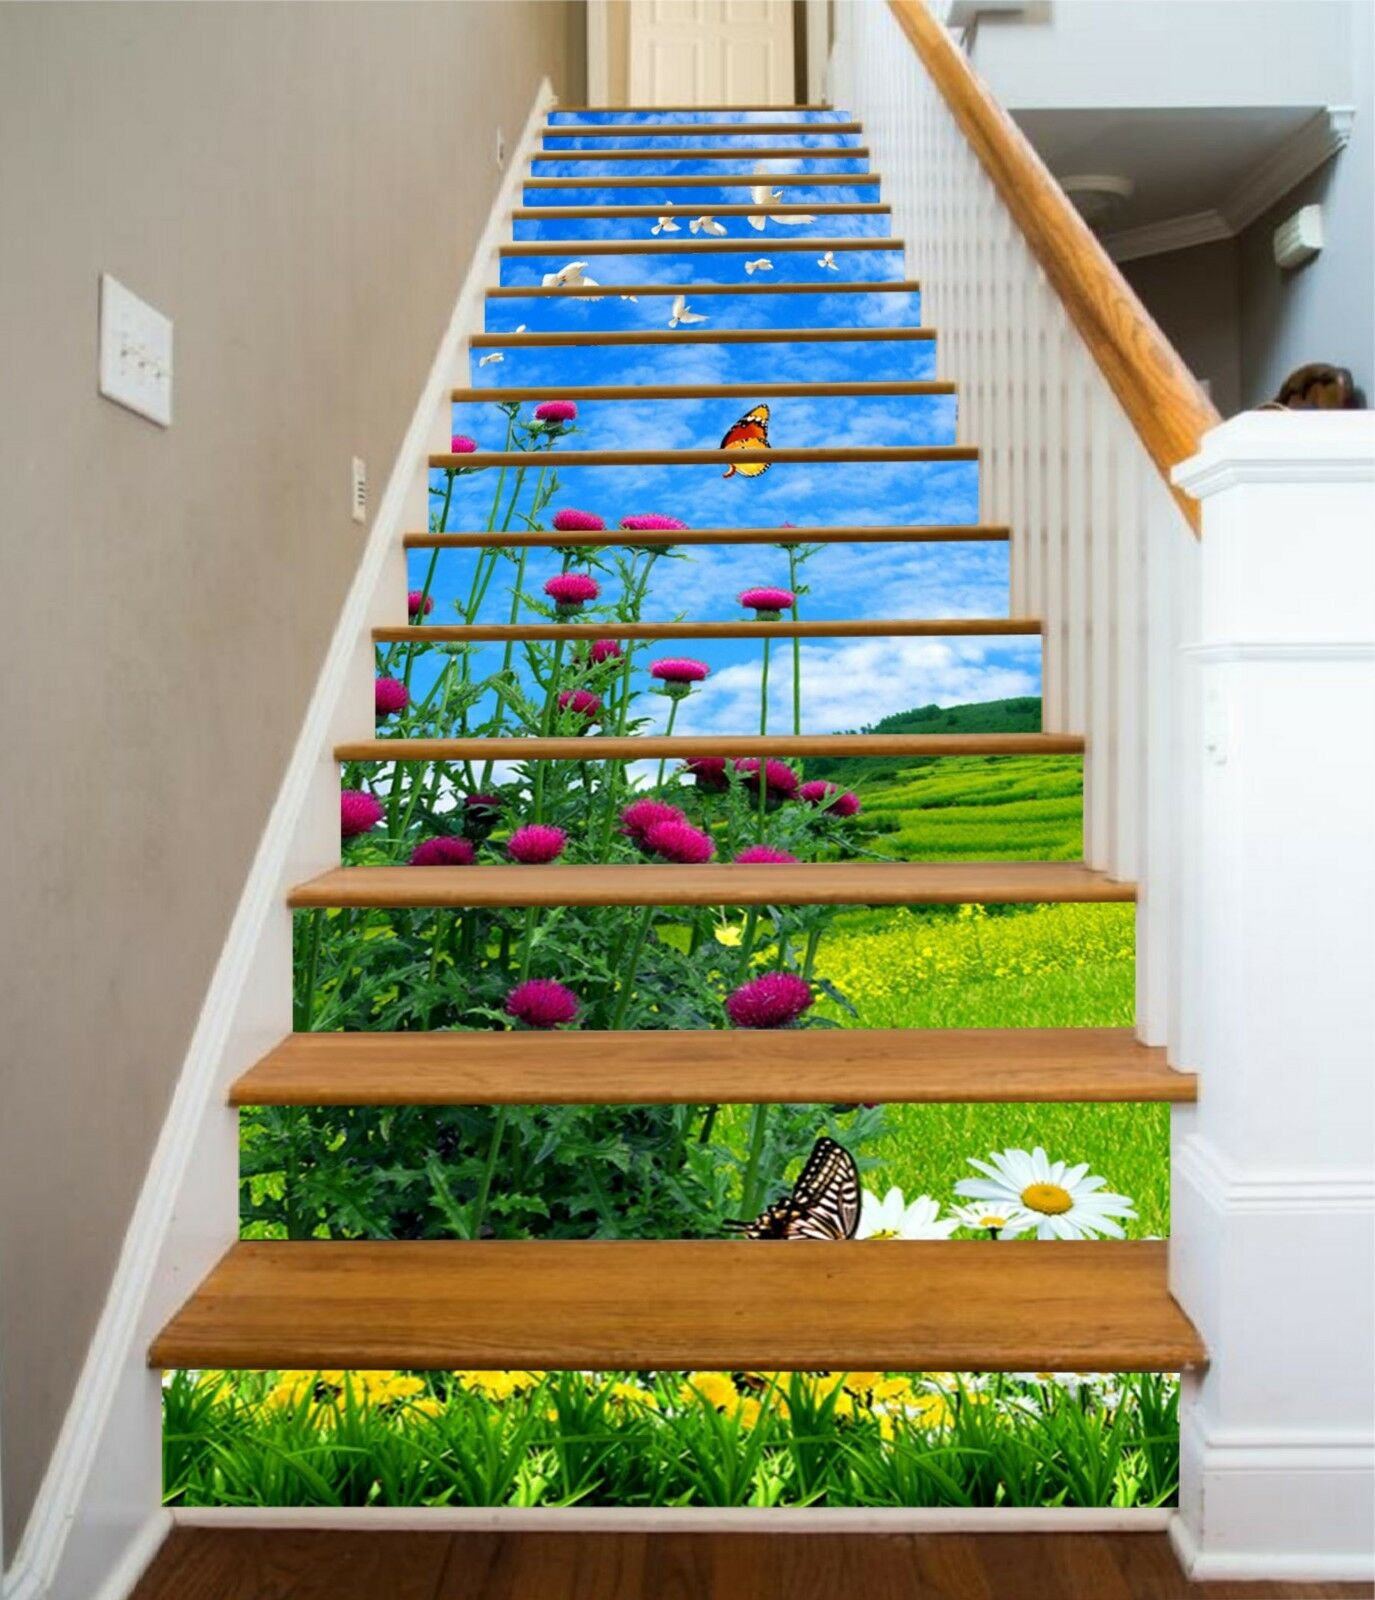 3D Meadow Flowers Stair Risers Decoration Photo Mural Vinyl Decal Wallpaper US